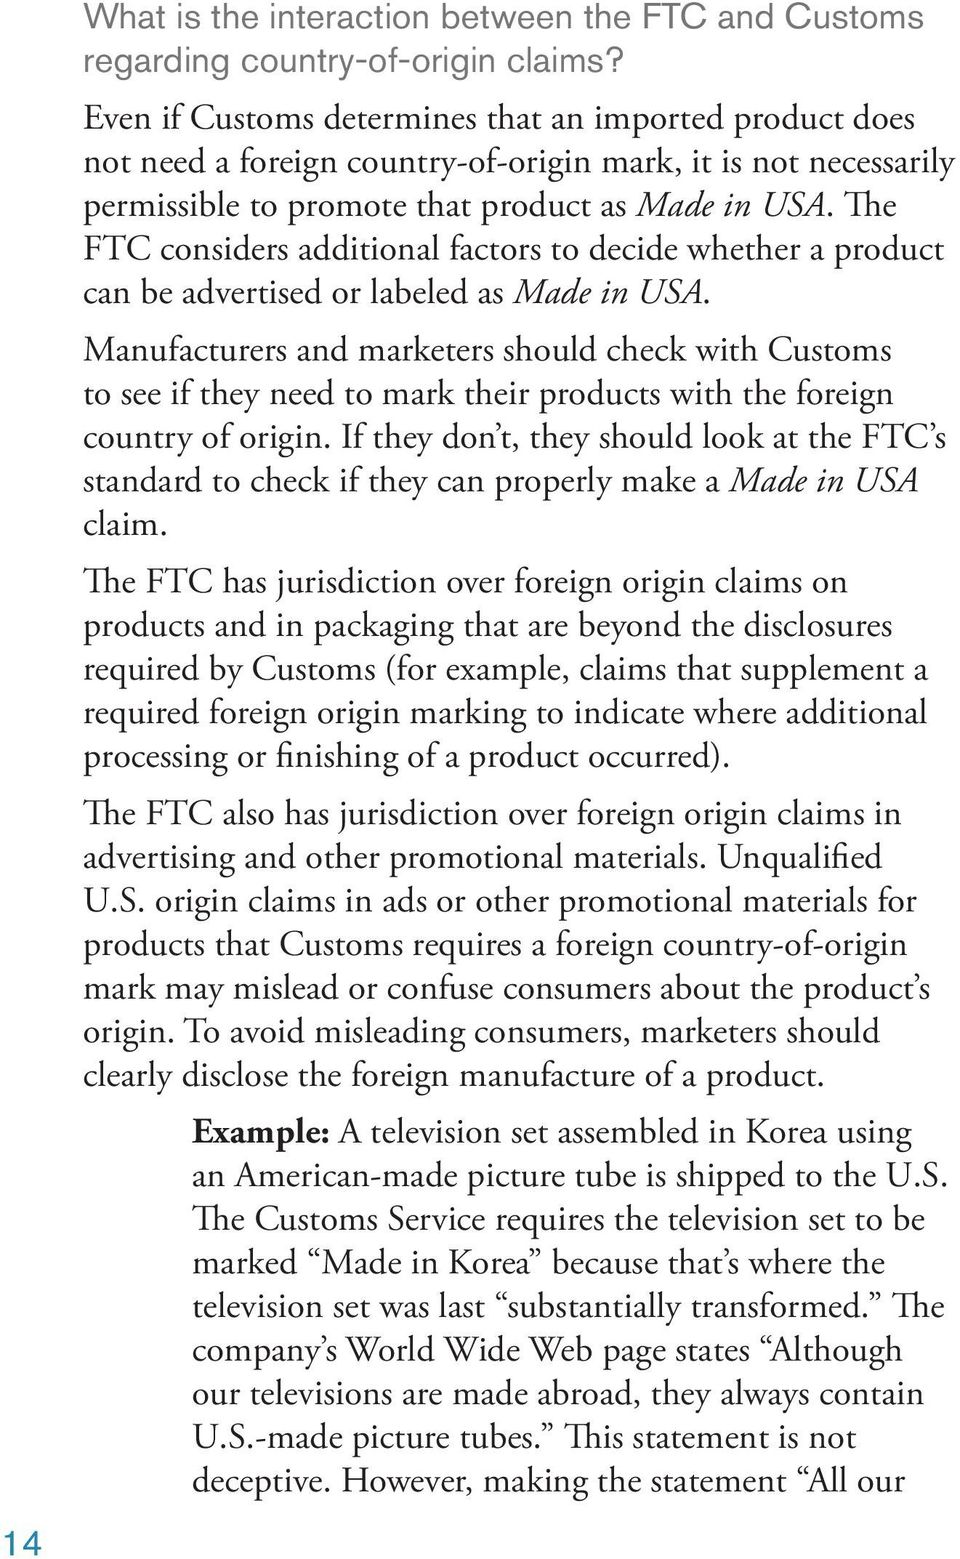 The FTC considers additional factors to decide whether a product can be advertised or labeled as Made in USA.